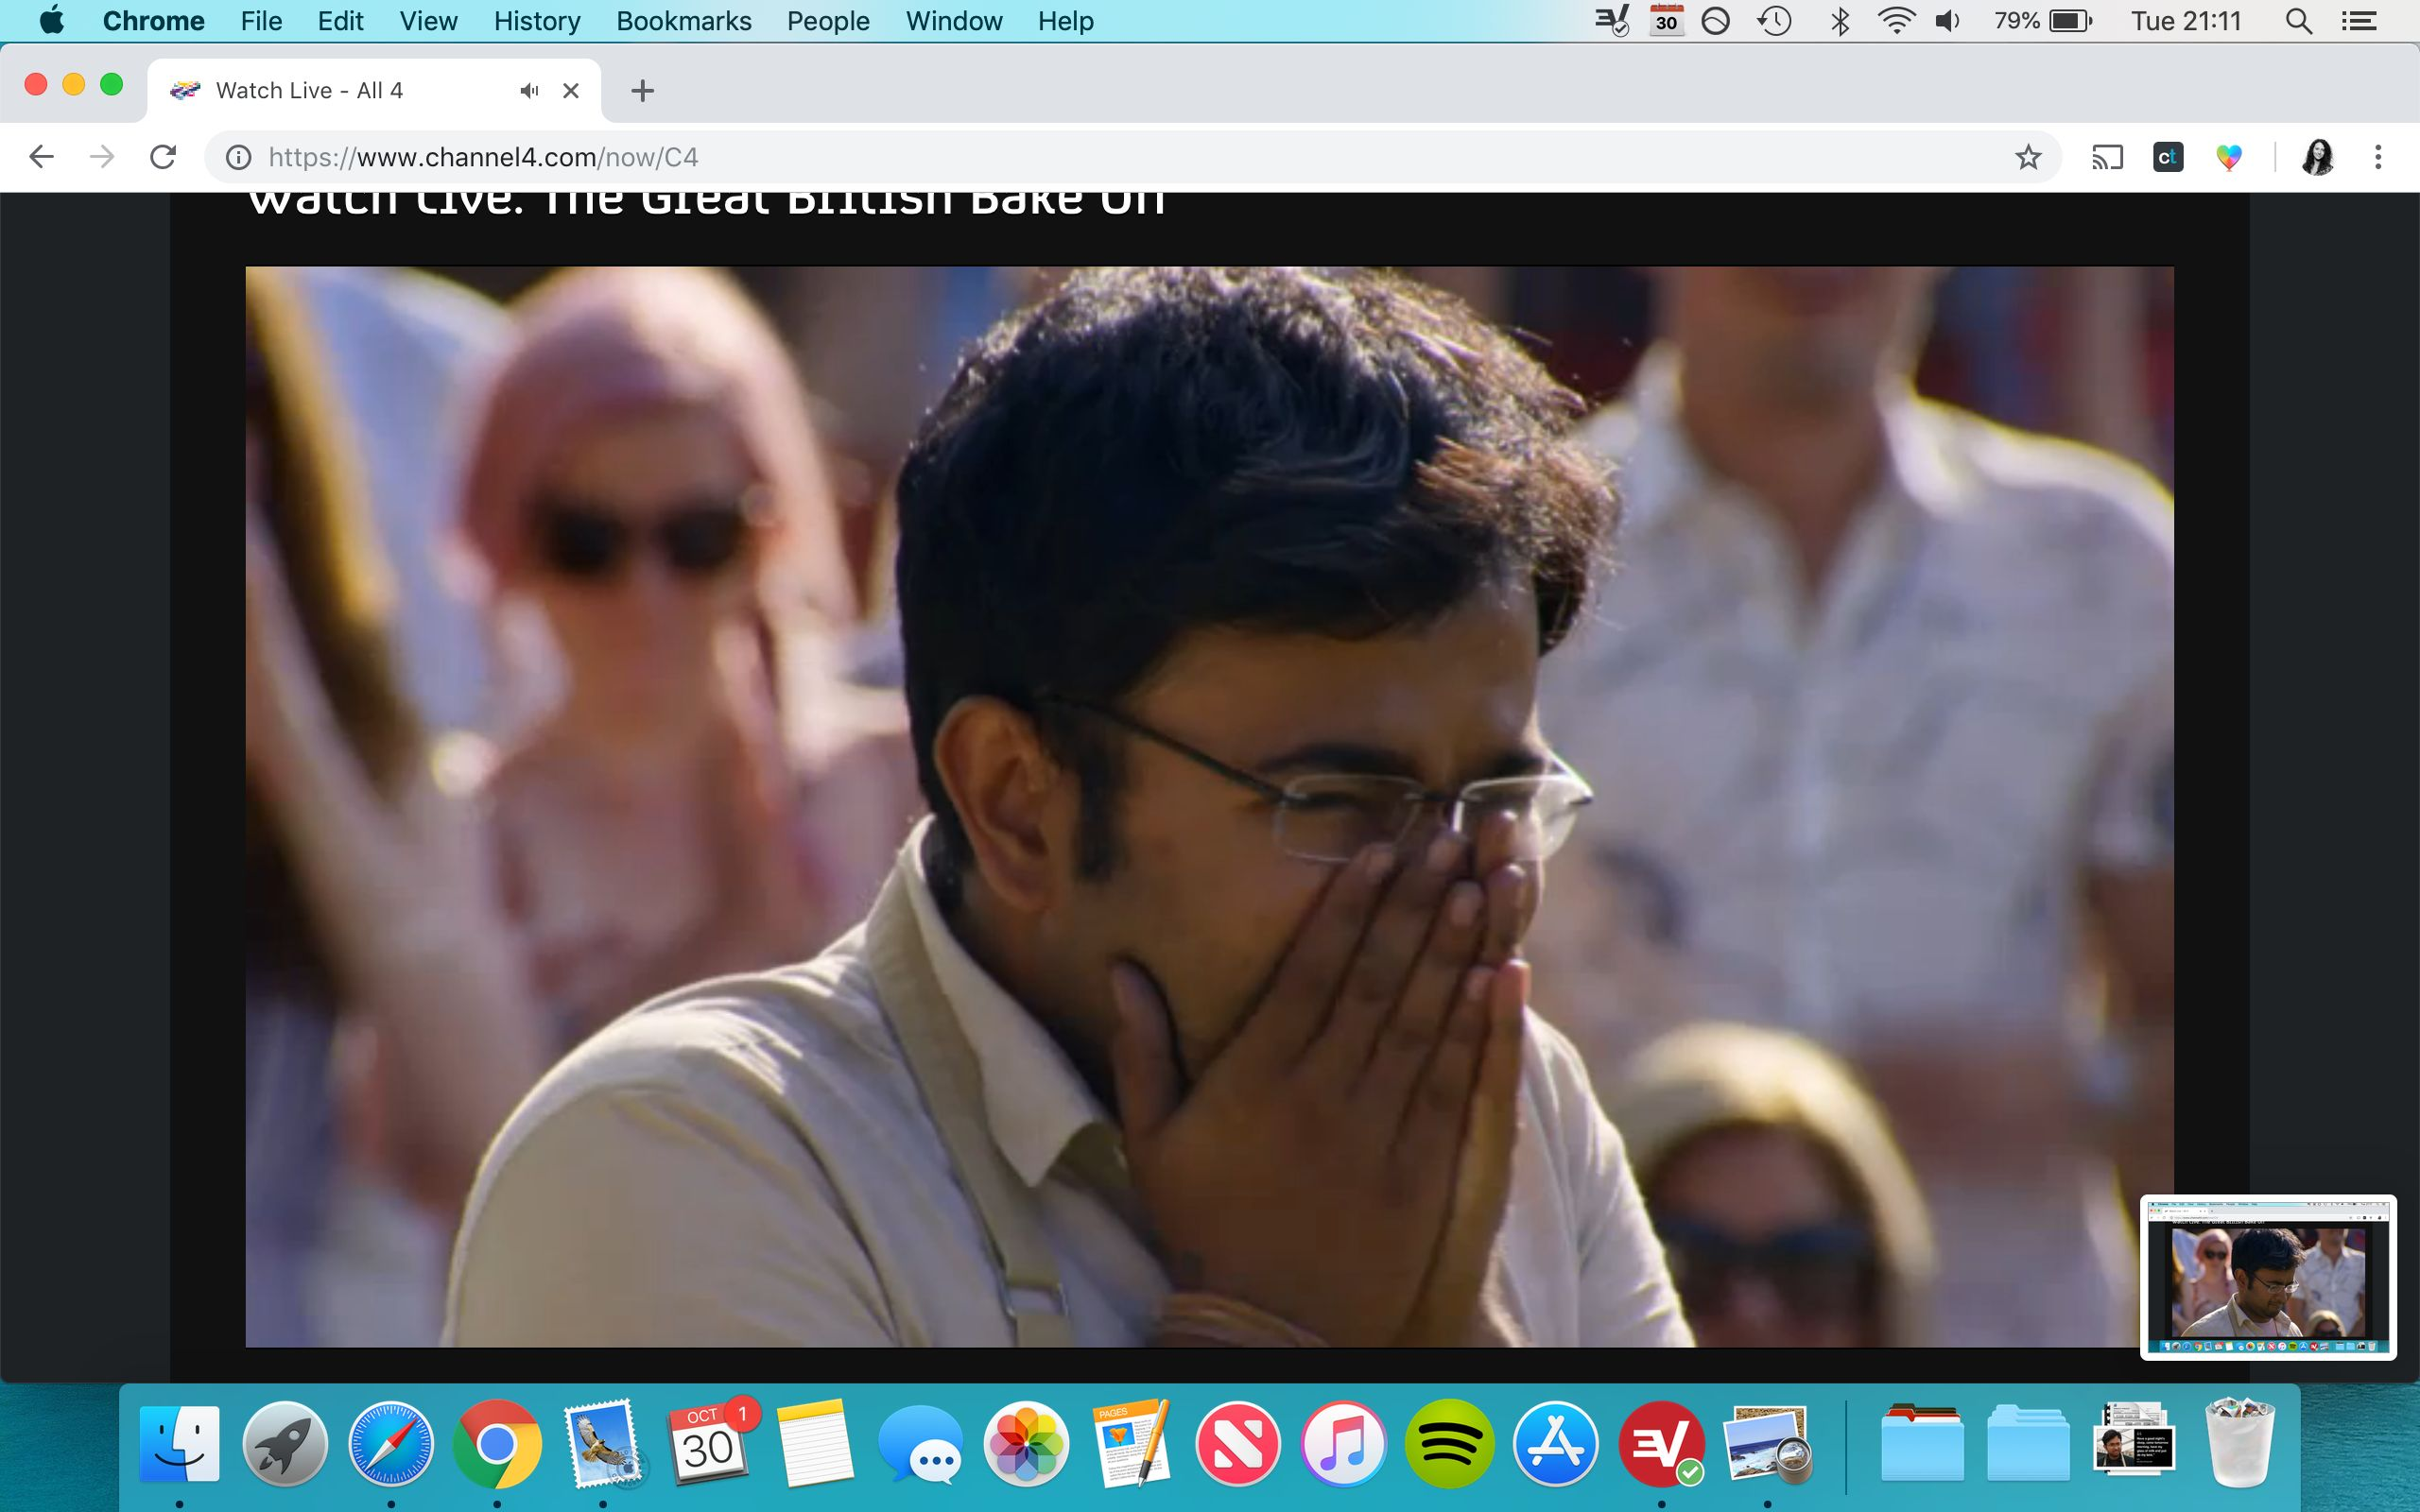 Rahul Overcomes Exploding Jar Disaster To Win 'Great British Bake Off'